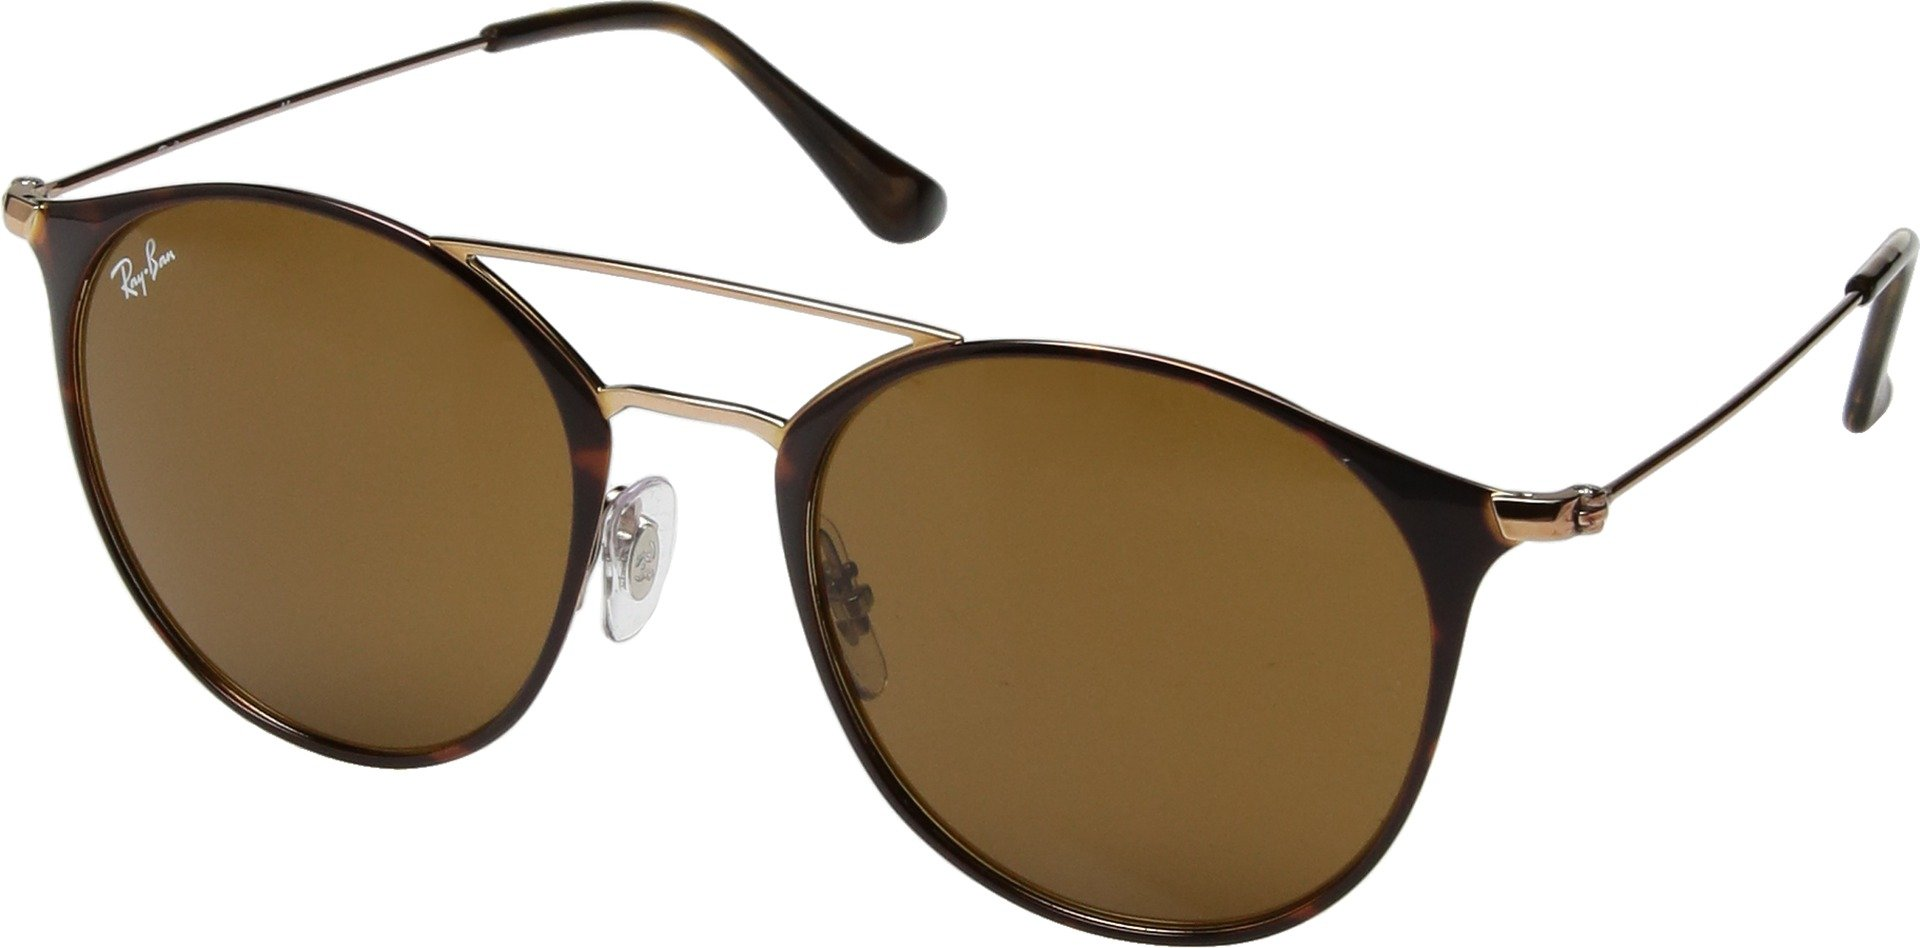 Ray-Ban Steel Unisex Round Sunglasses, Copper on Top Havana, 52 mm